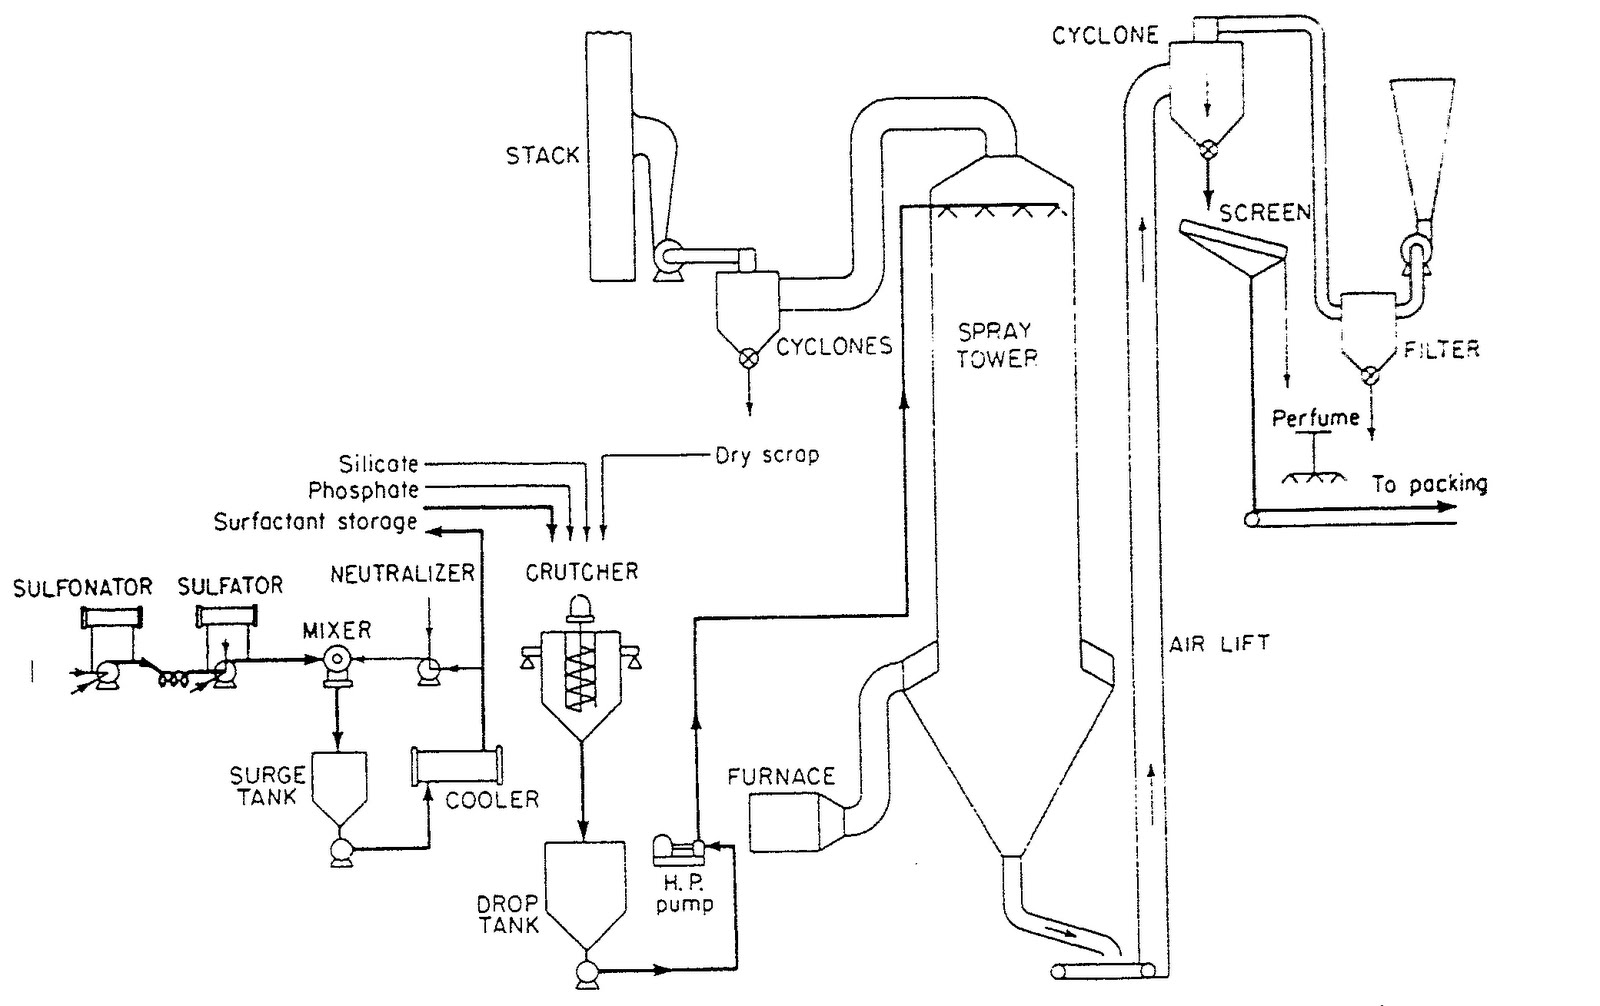 process flow diagram of detergent